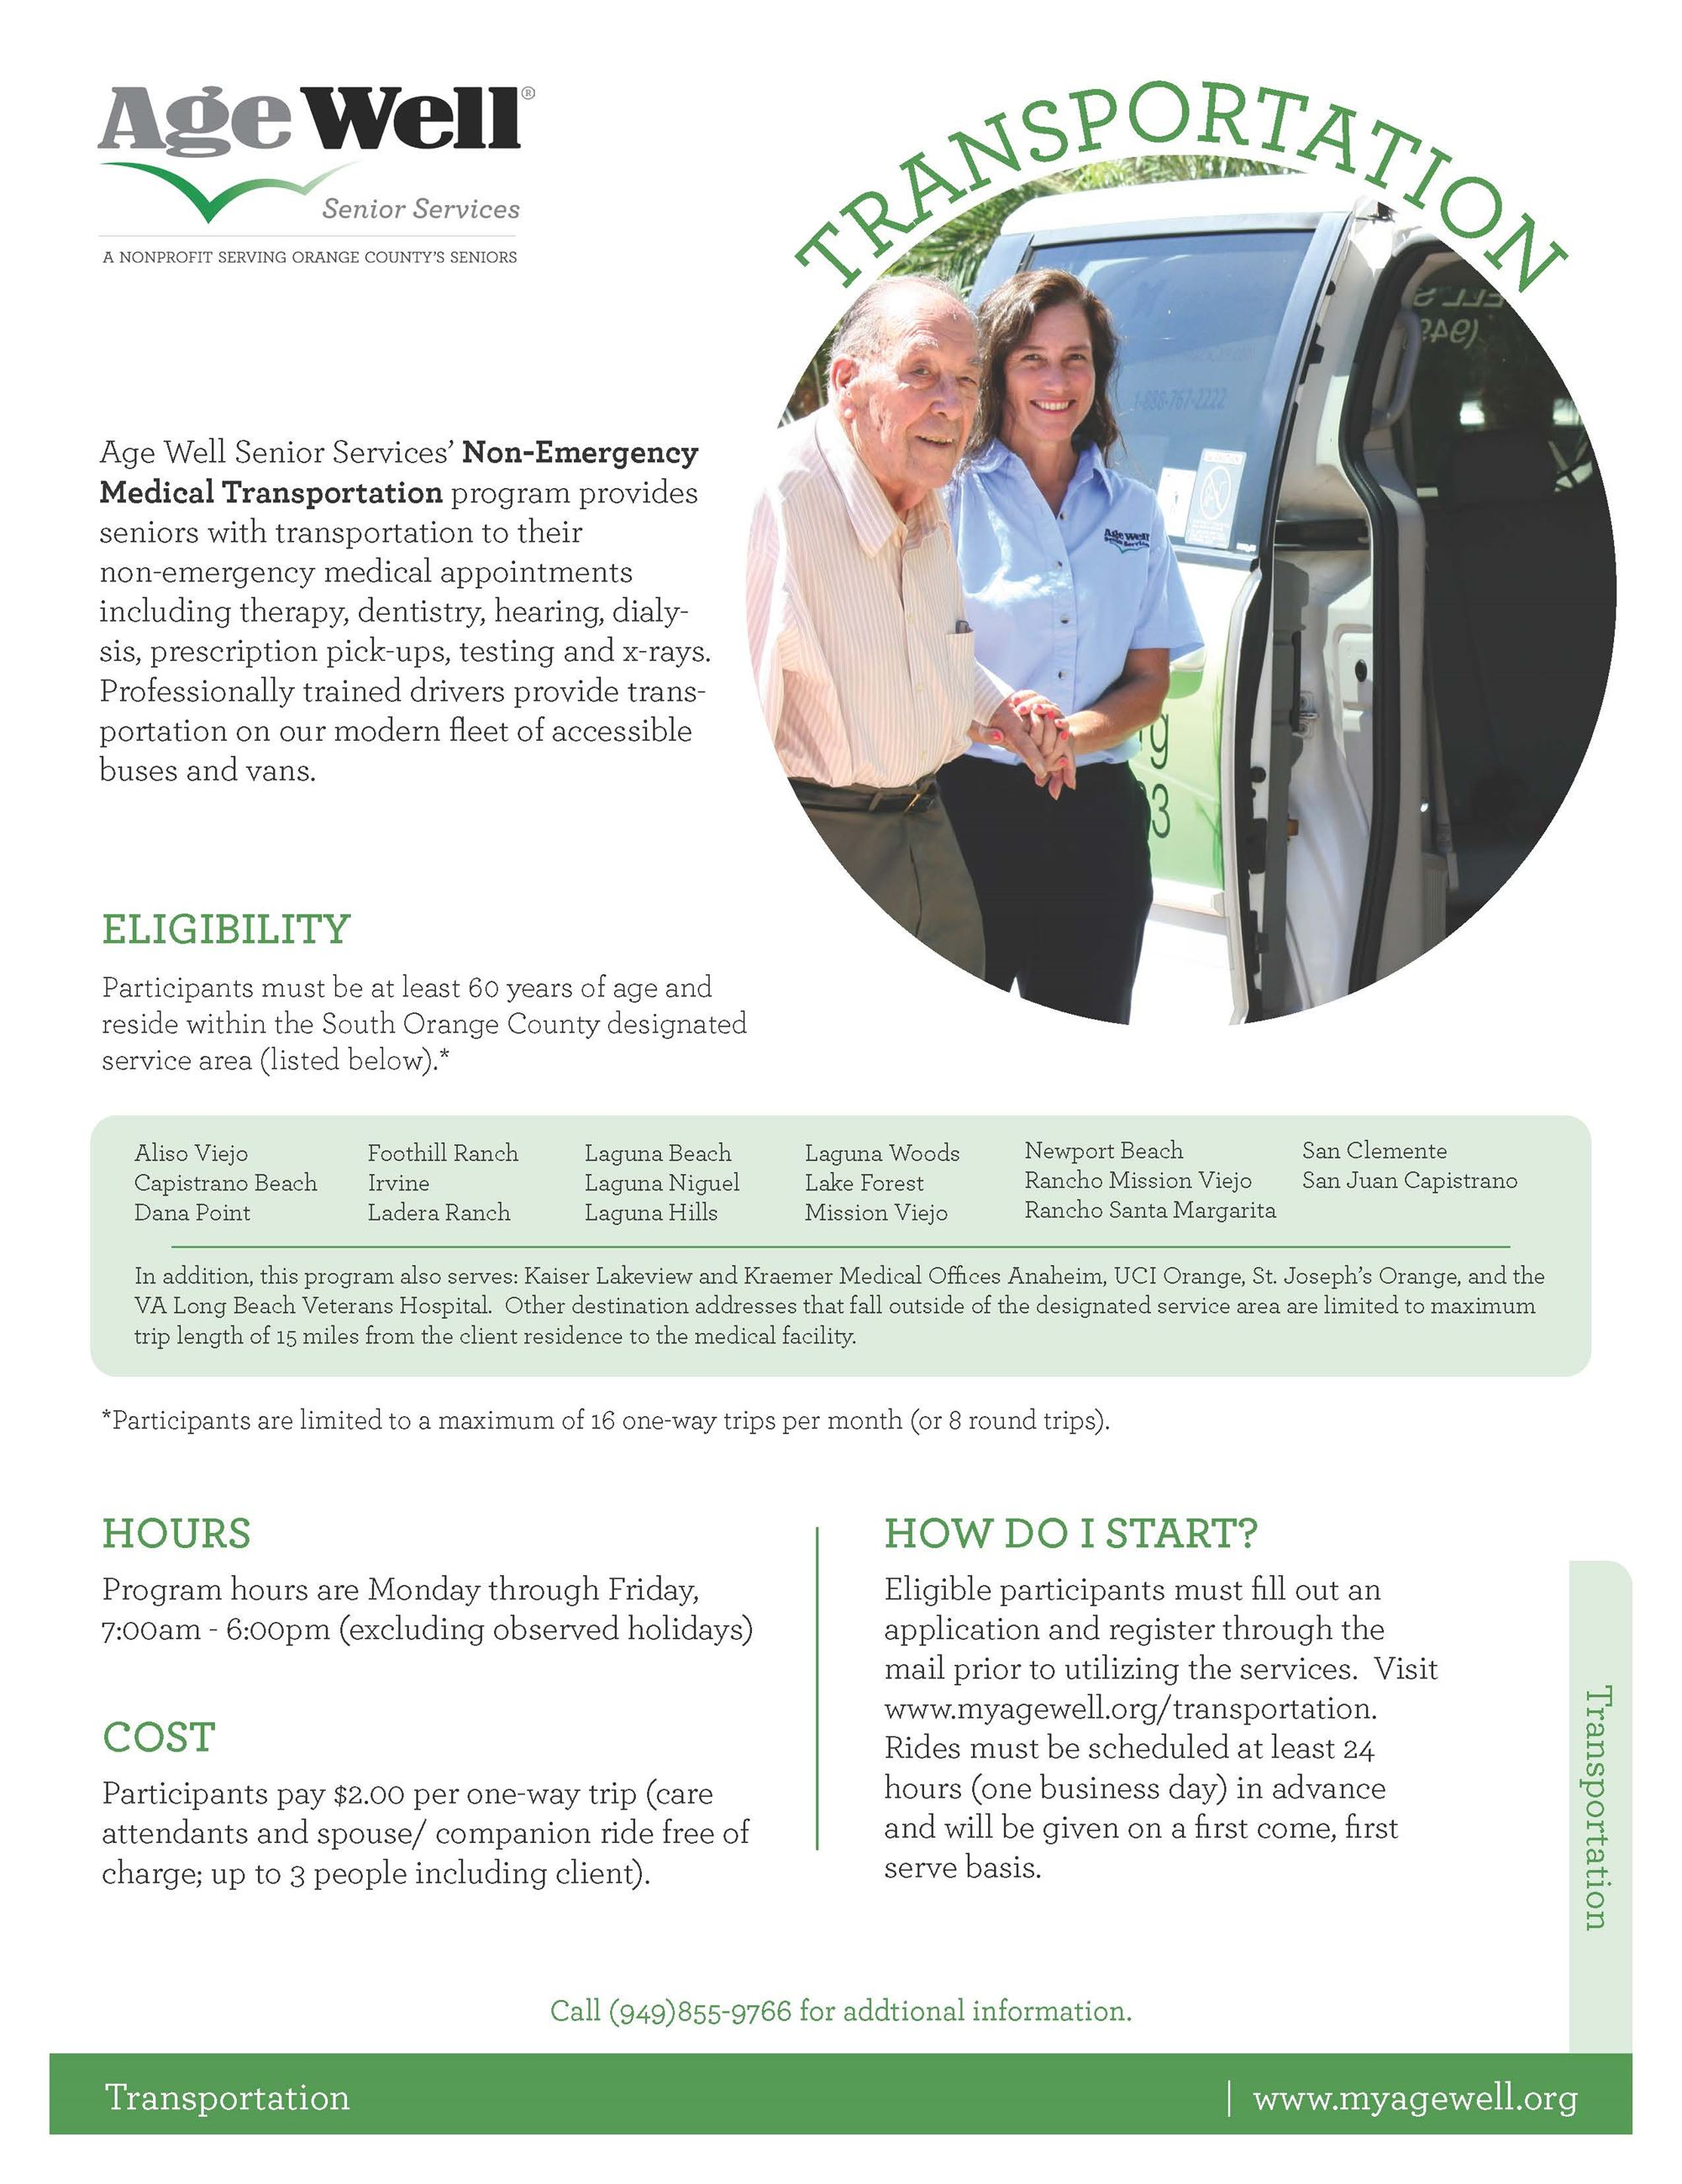 Age Well Senior Services Transportation Flyer_2020